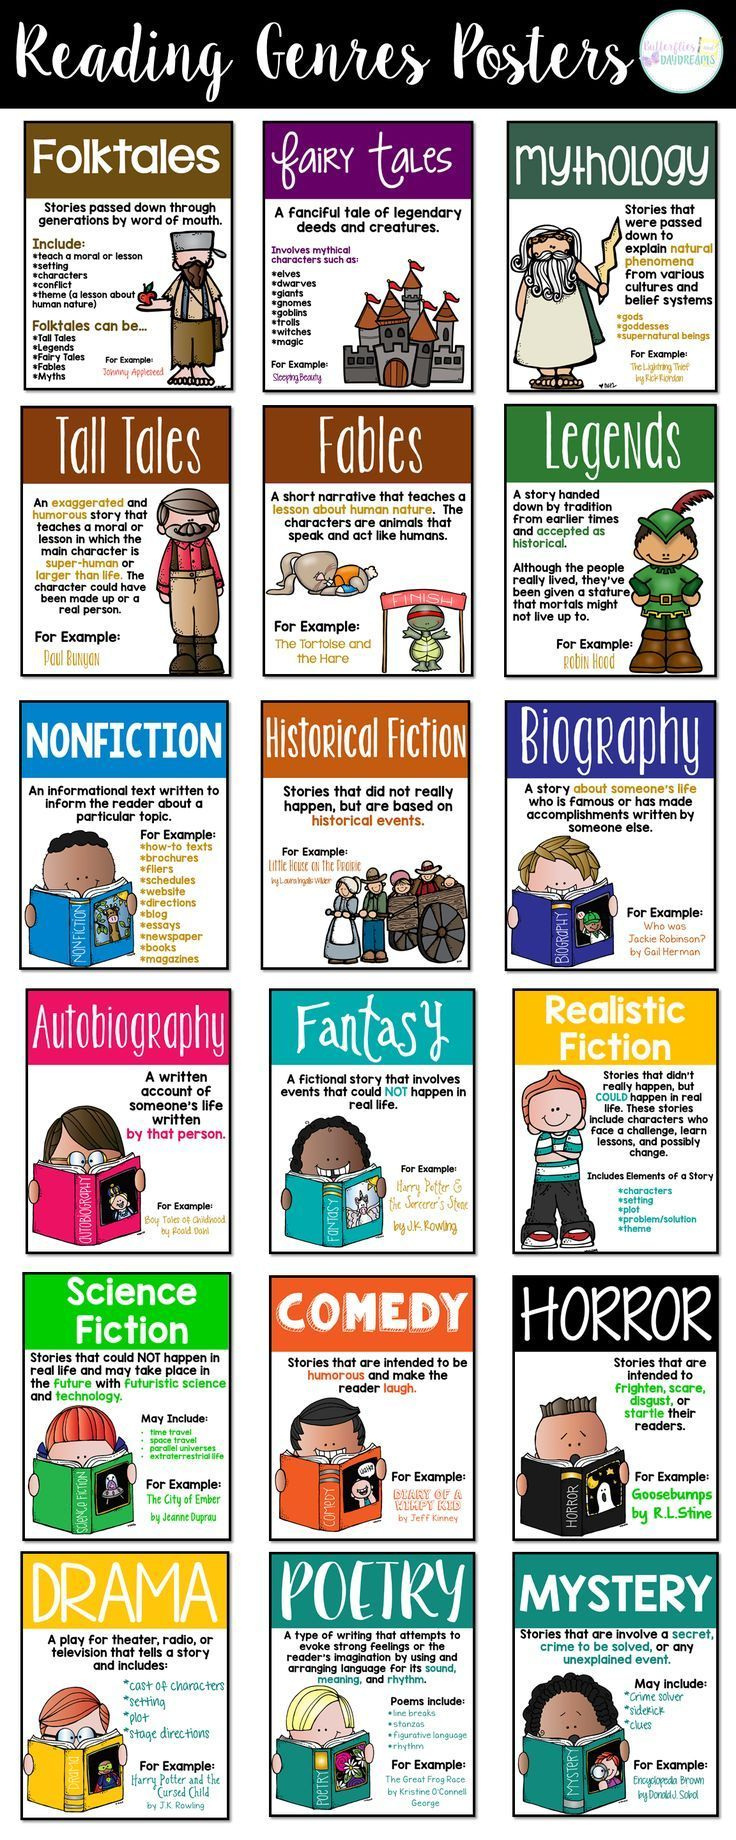 Free Printable Reading Genre Posters - Genre Posters Free Printable